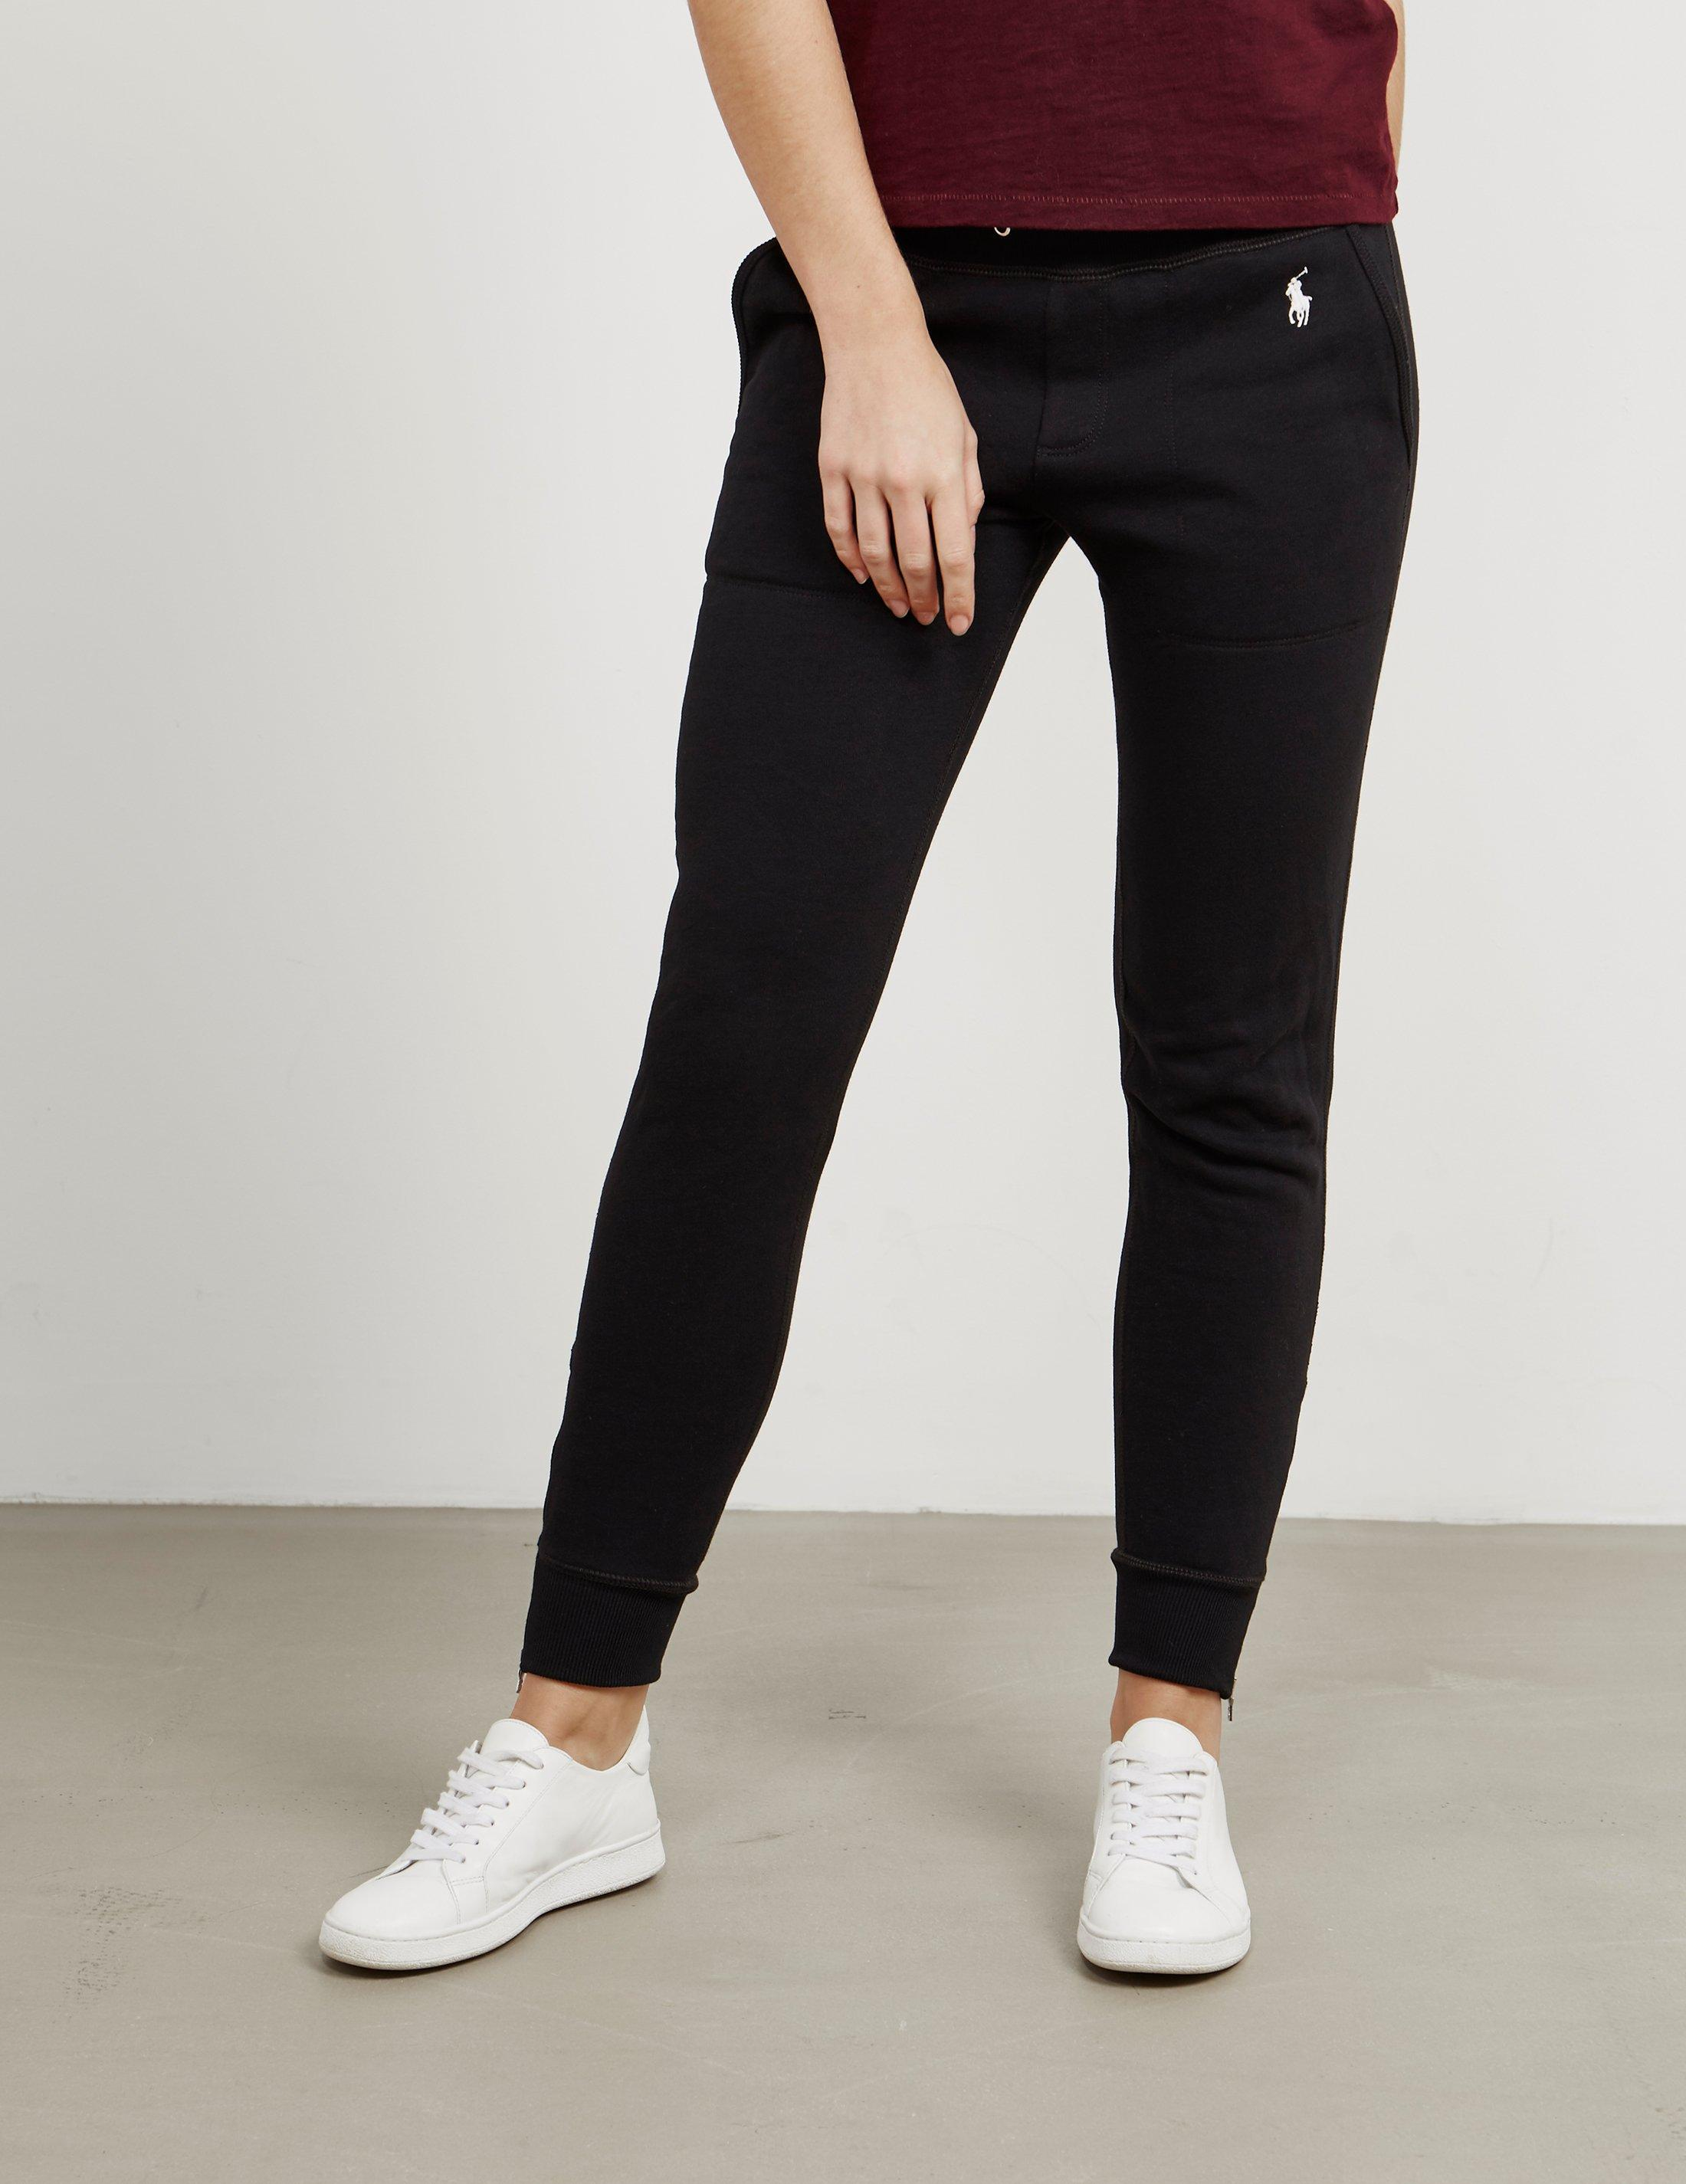 hoard as a rare commodity best selection of 2019 best shoes Polo Ralph Lauren Womens Fleece Cuffed Joggers Black - Lyst